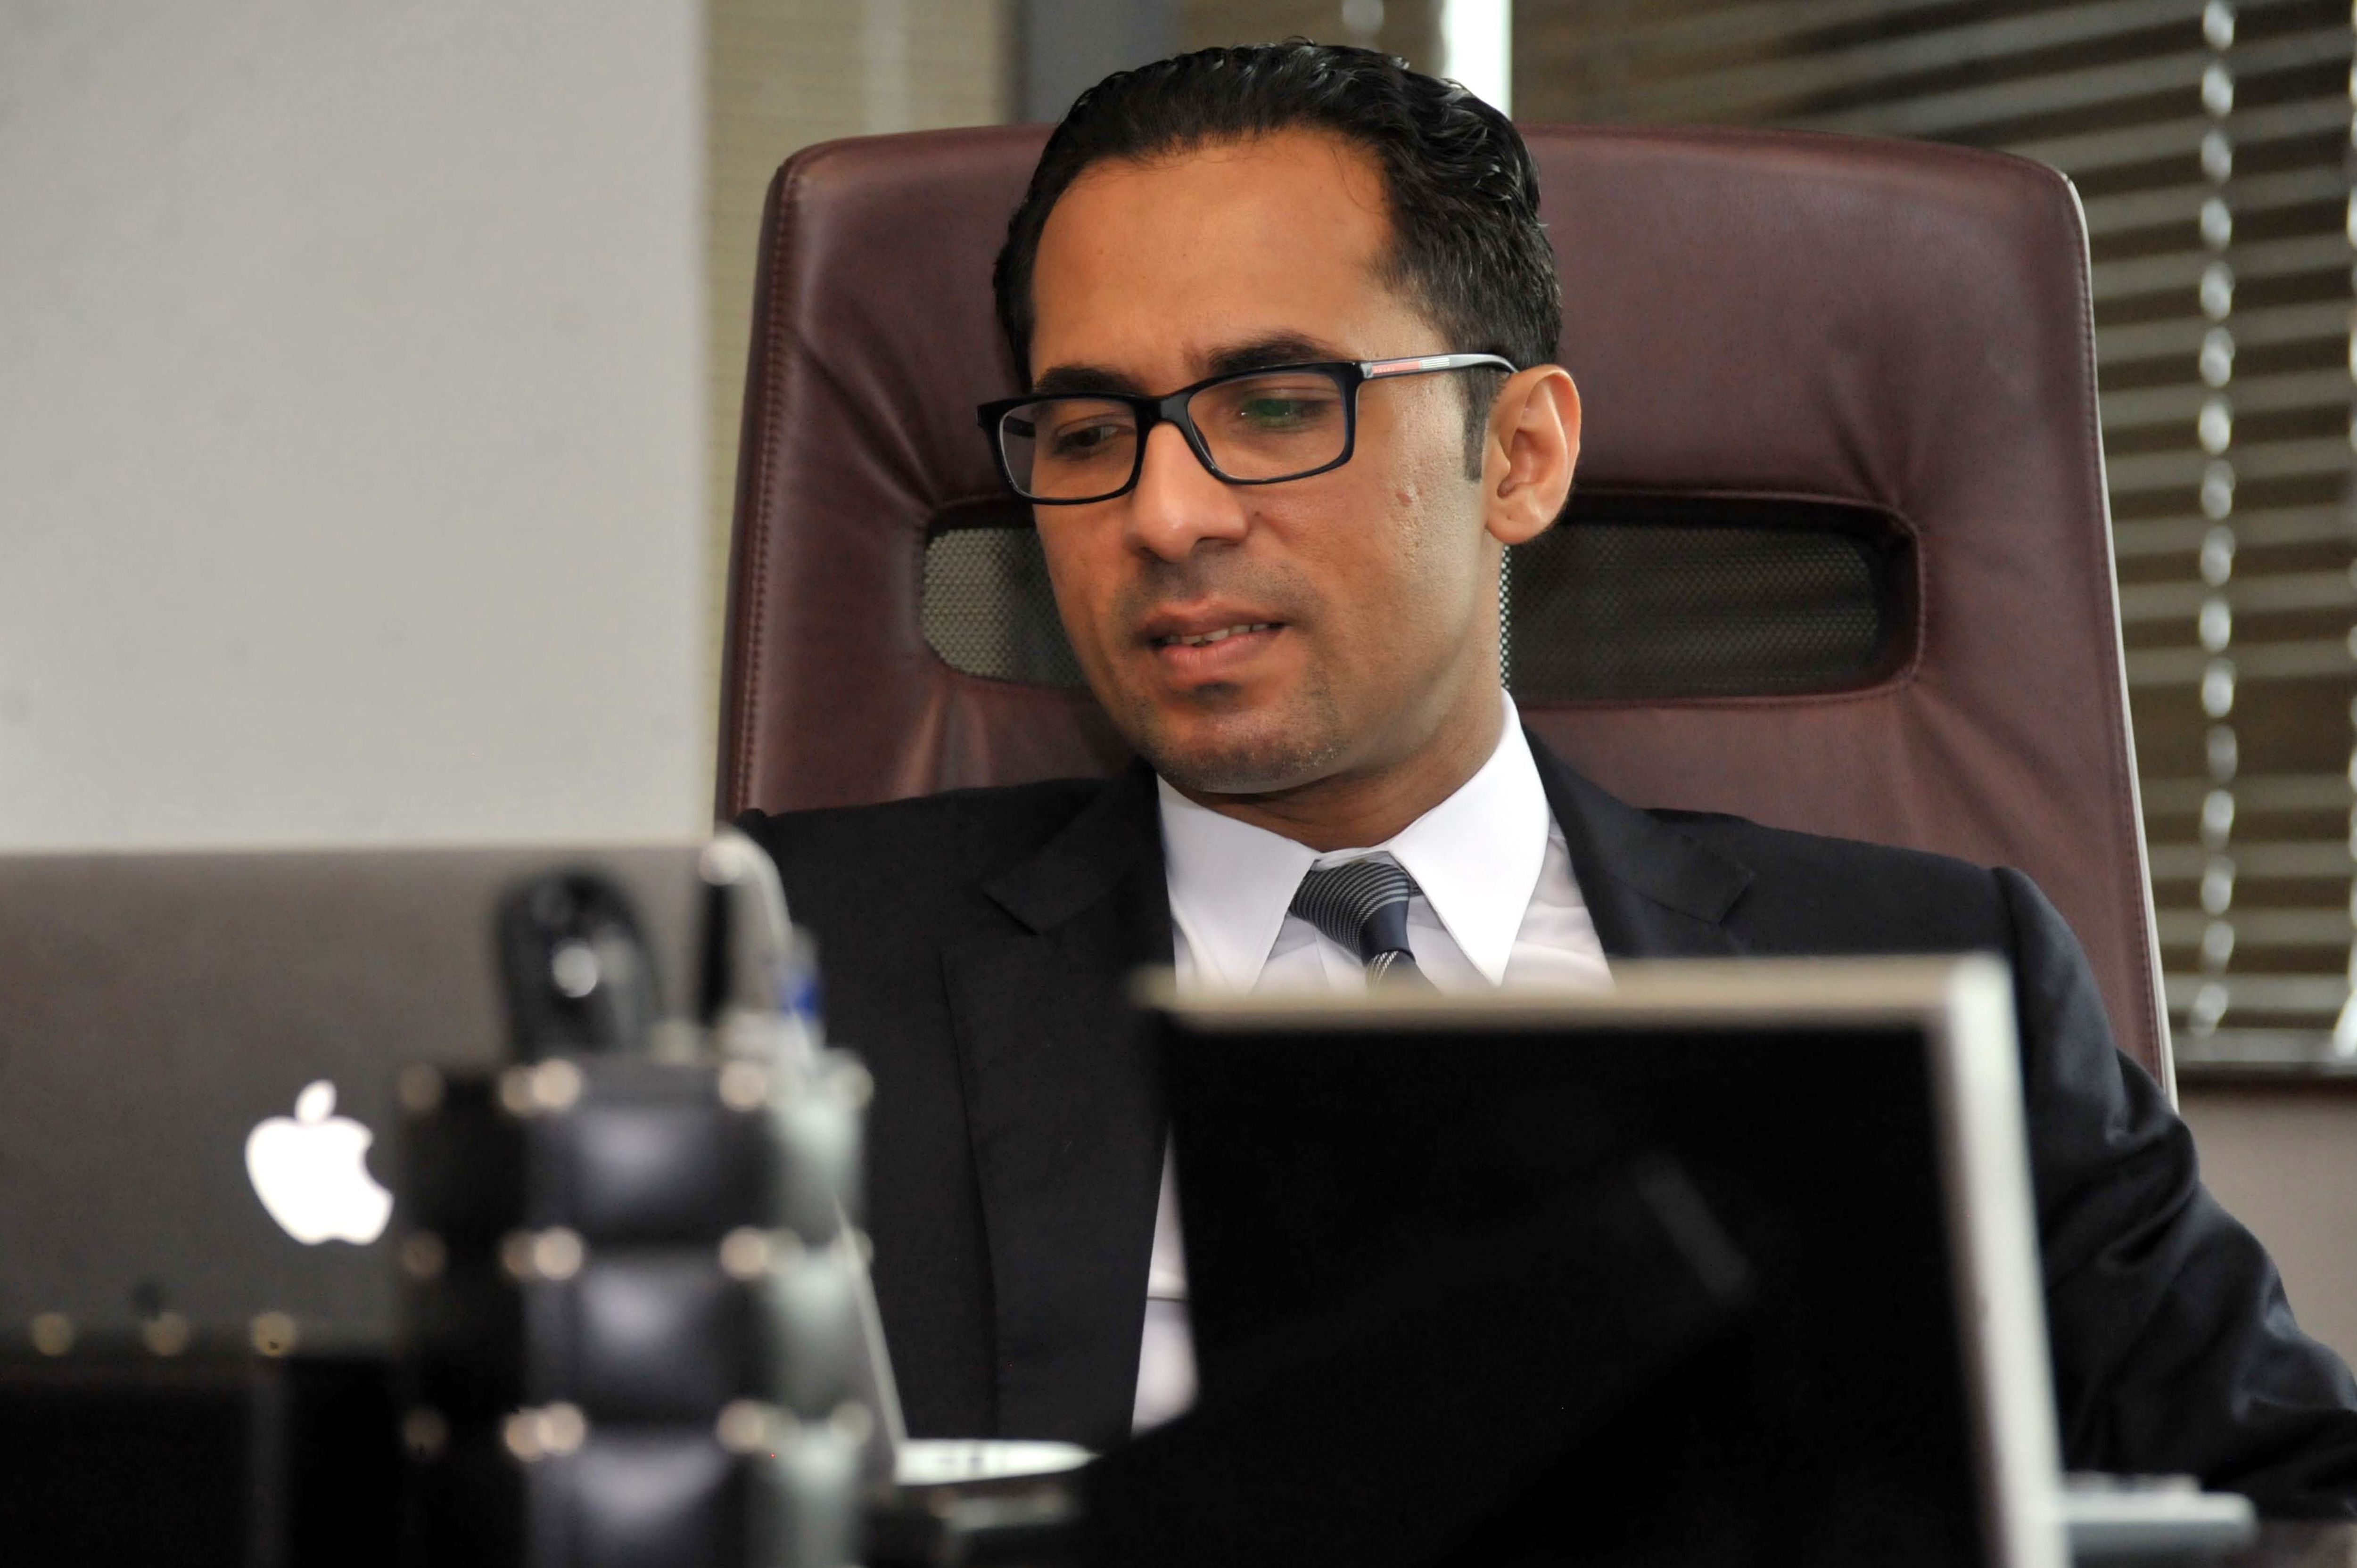 Tanzanian businessman Mohammed Dewji sits in his office in Dar es Salaam, Tanzania on April 23, 2015.